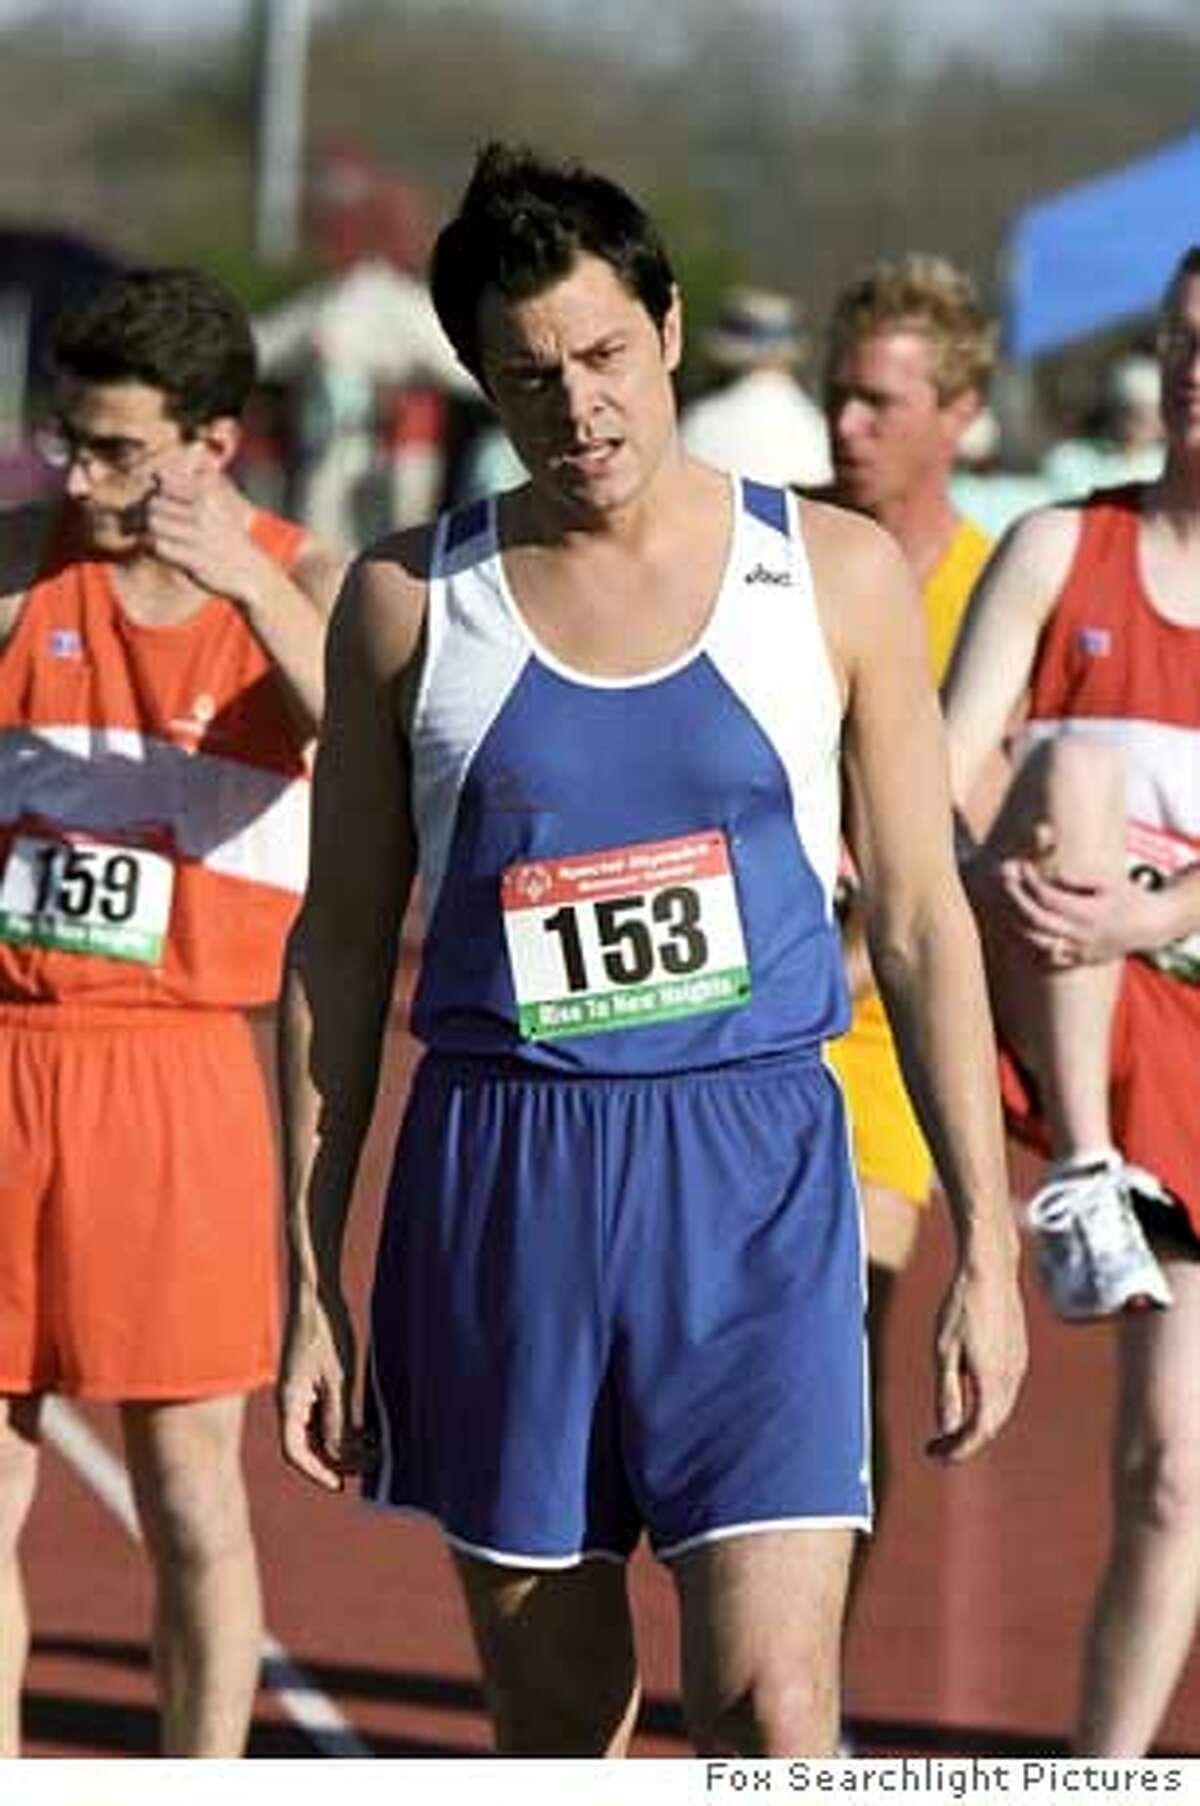 """In this photo provided by Fox Searchlight Pictures, to pay off a debt, Steve (Johnny Knoxville), poses as a contestant in Special Olympics, hoping to dethrone reigning champion, in """"The Ringer."""" (AP Photo/Fox Searchlight Pictures) Ran on: 12-23-2005 Steve (Johnny Knoxville) poses as a contestant in the Special Olympics, hoping to dethrone the champion. Ran on: 01-15-2006 Johnny Knoxville in the Special Olympics in The Ringer."""